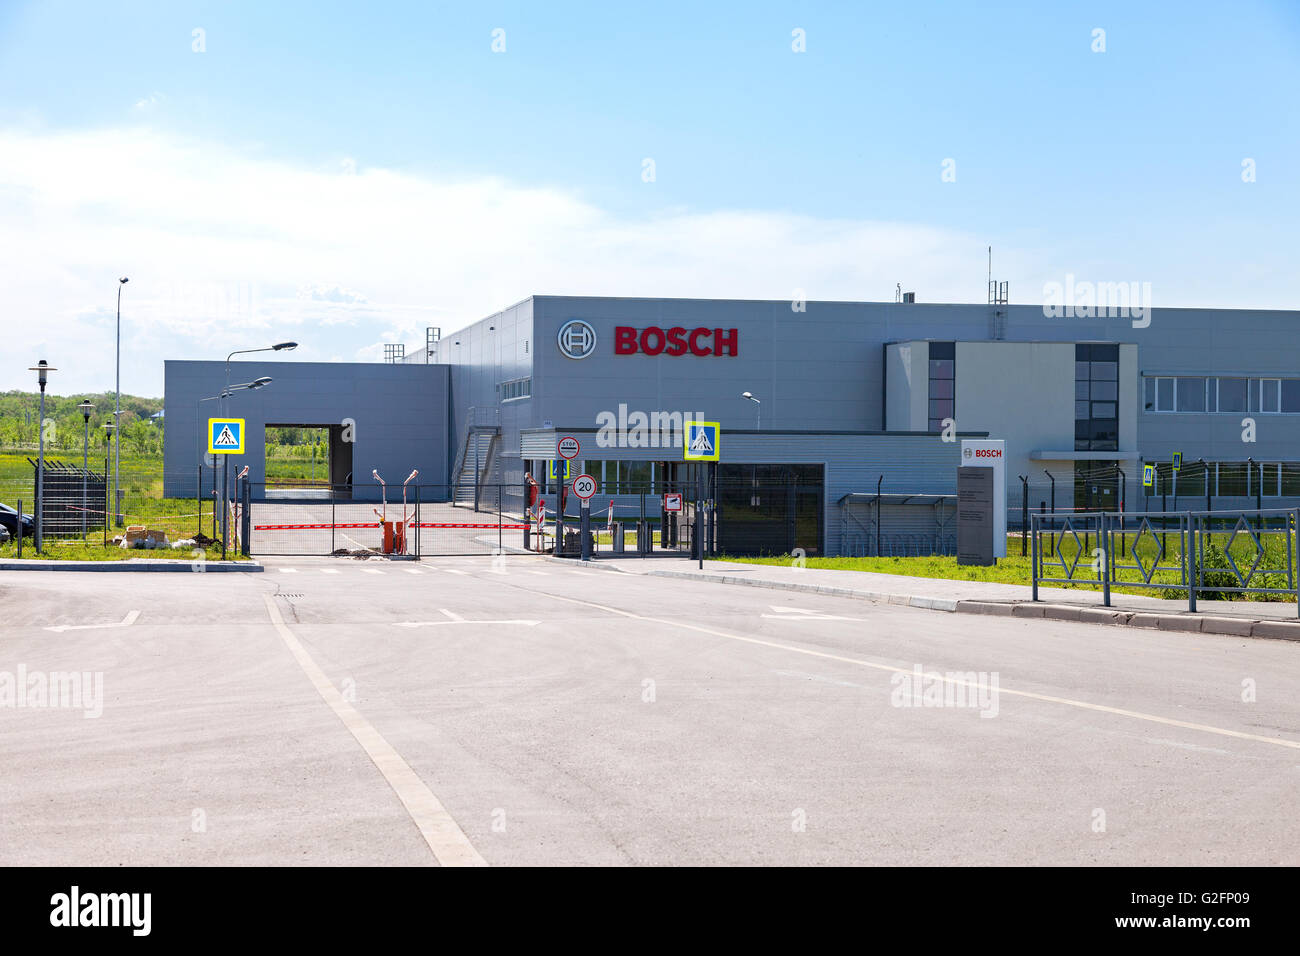 Bosch manufacturing plant in Samara. Robert Bosch LLC is a multinational engineering and electronics company - Stock Image